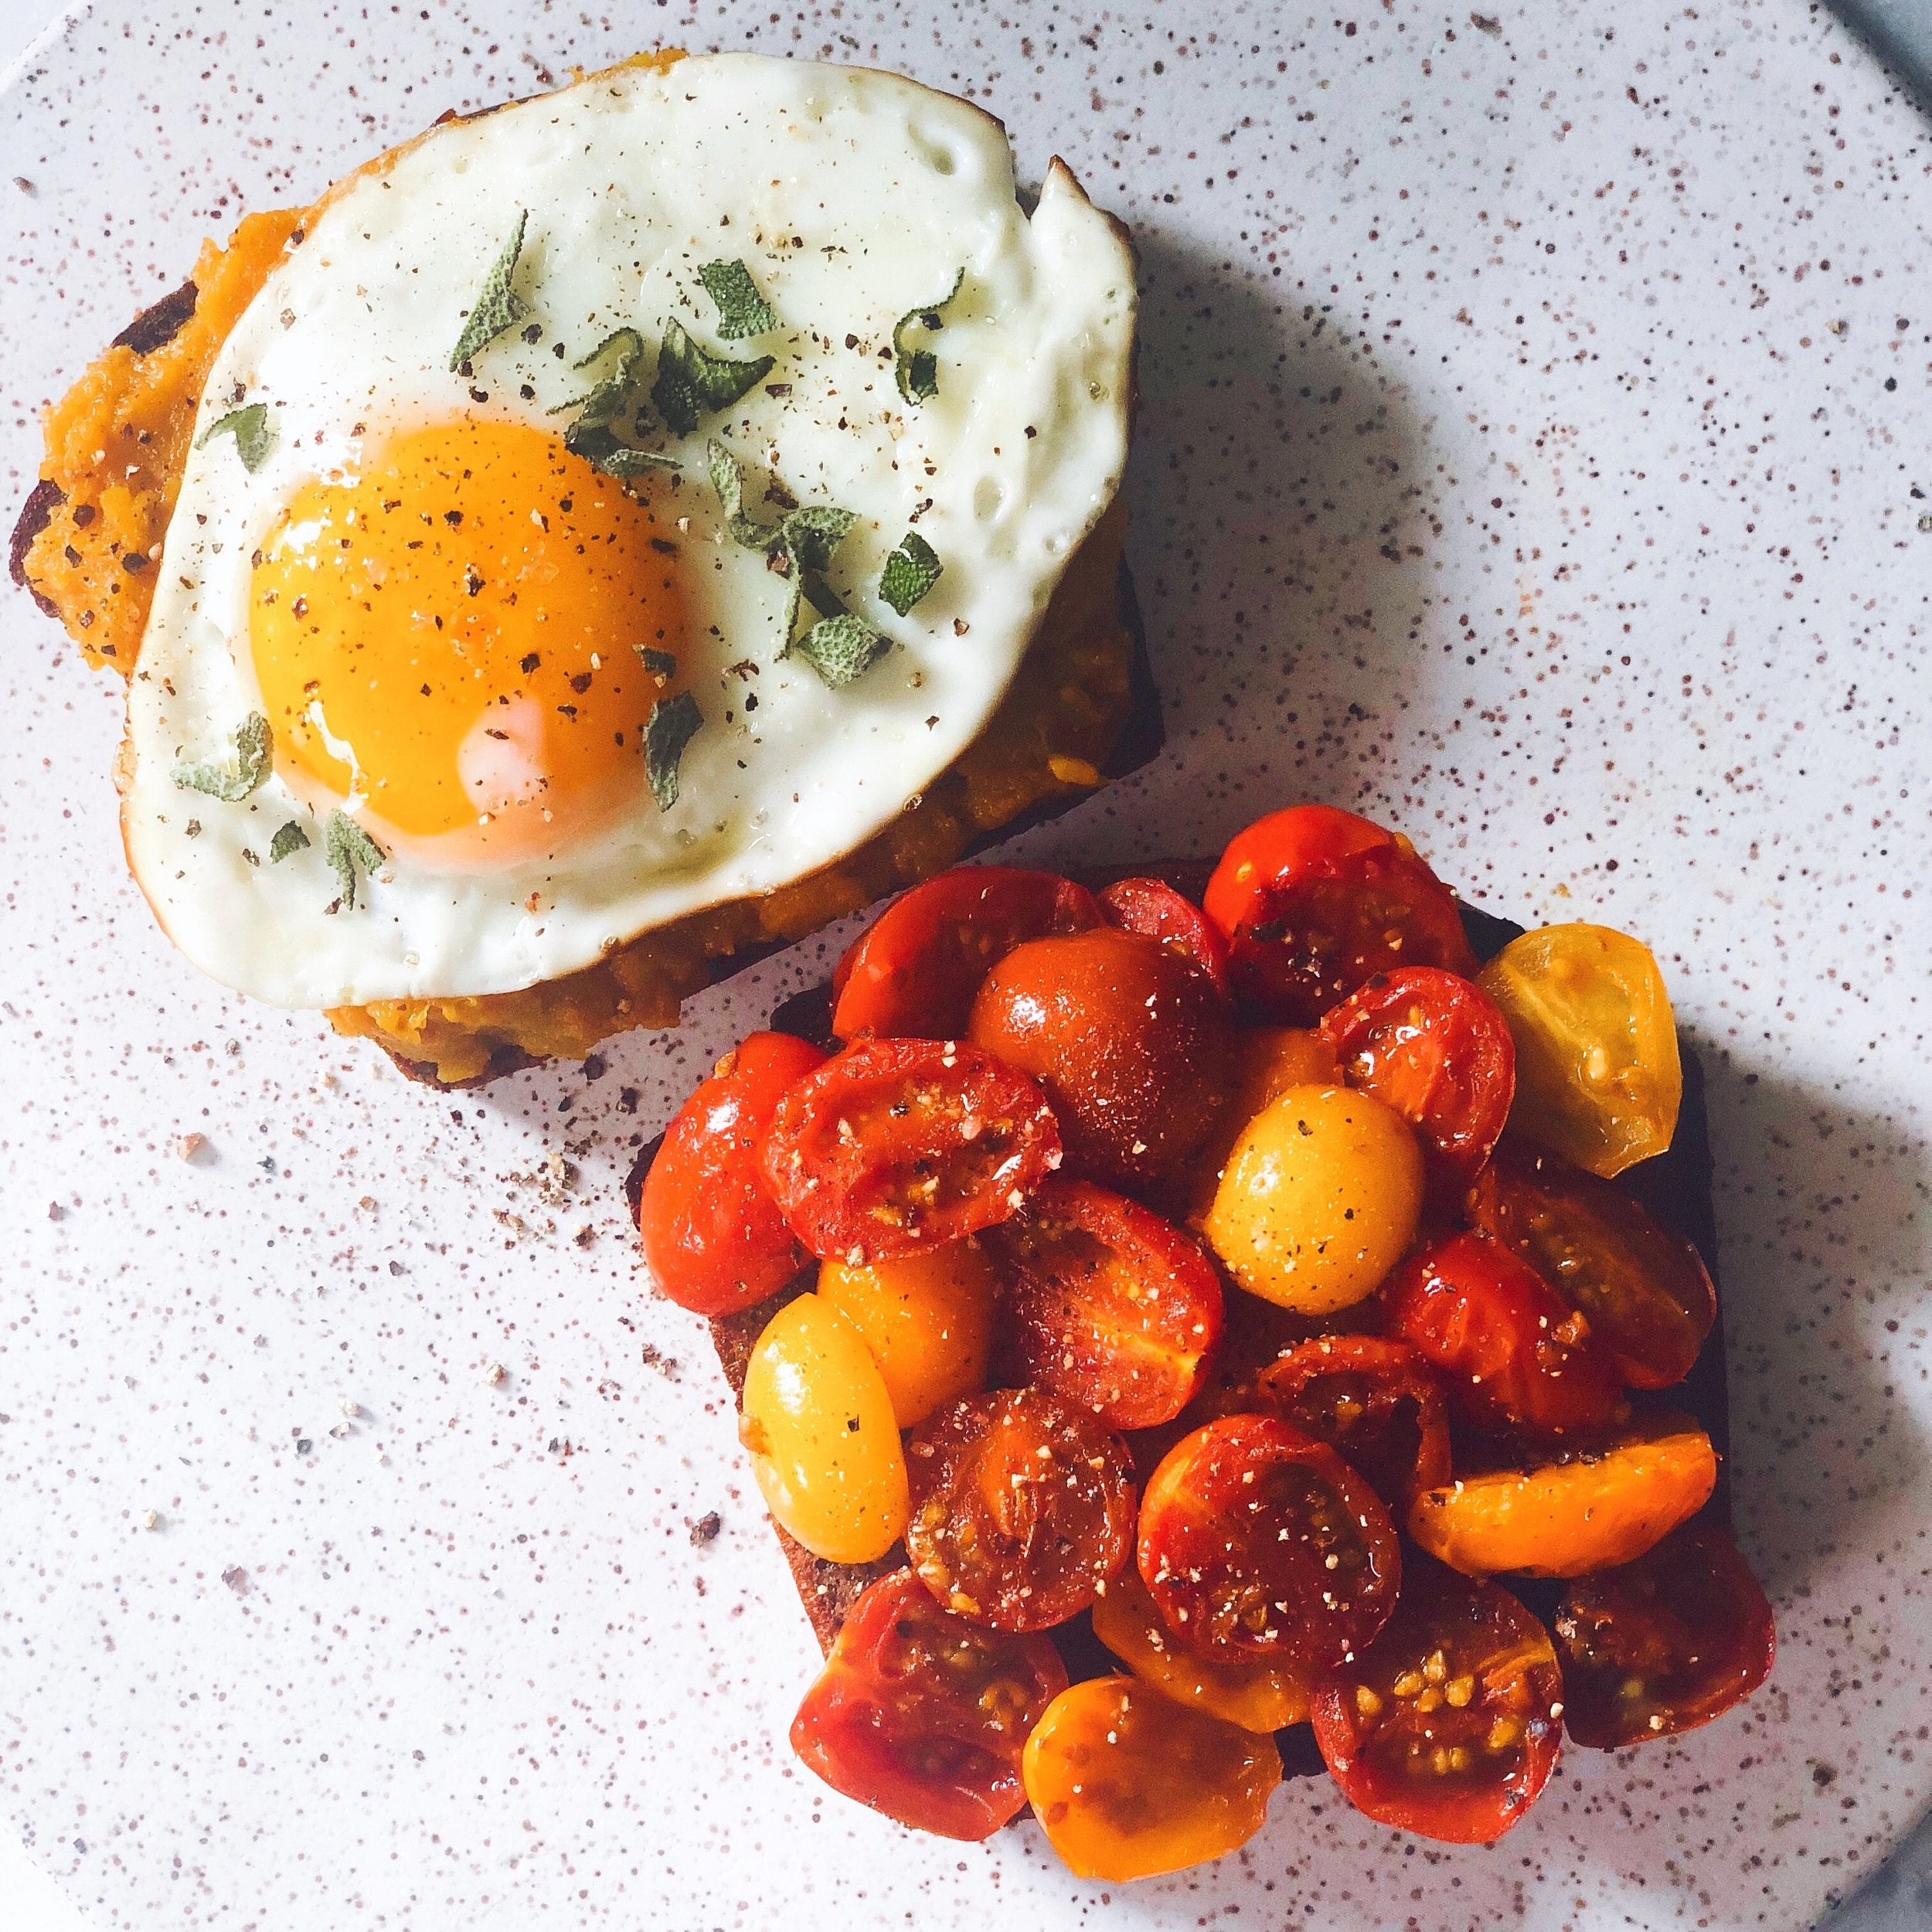 Egg and tomatoes on two pieces of toast